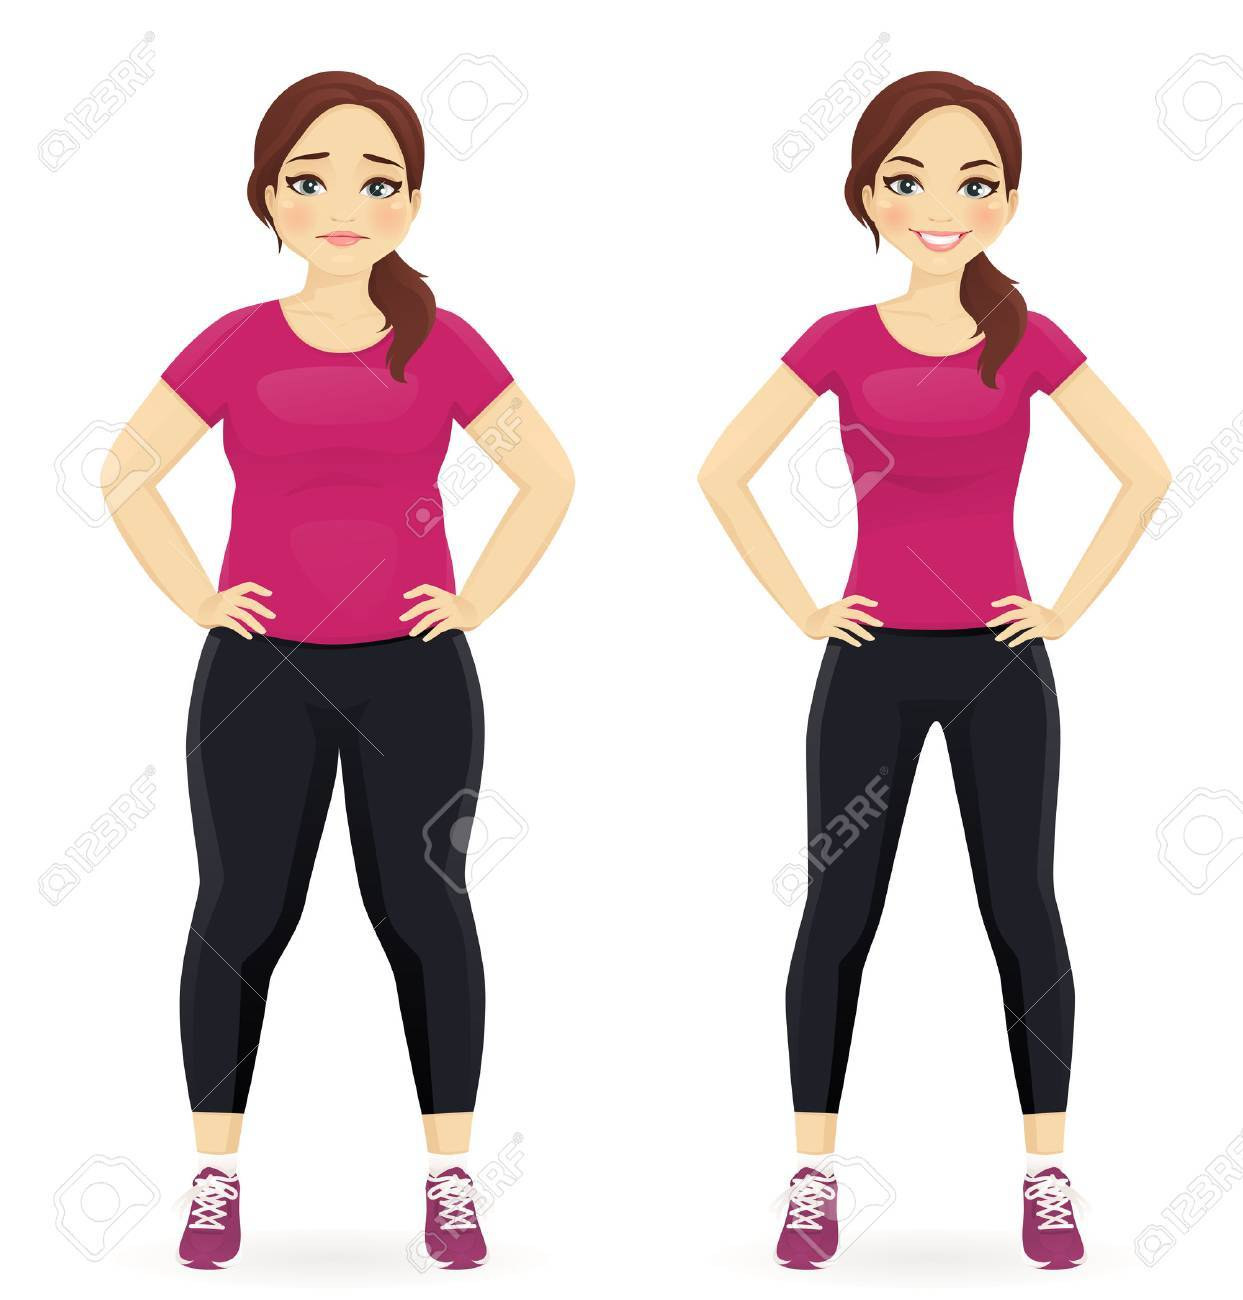 Fat And Slim Woman Before And After Weight Loss In Sportswear Royalty Free Cliparts Vectors And Stock Illustration Image 68882873